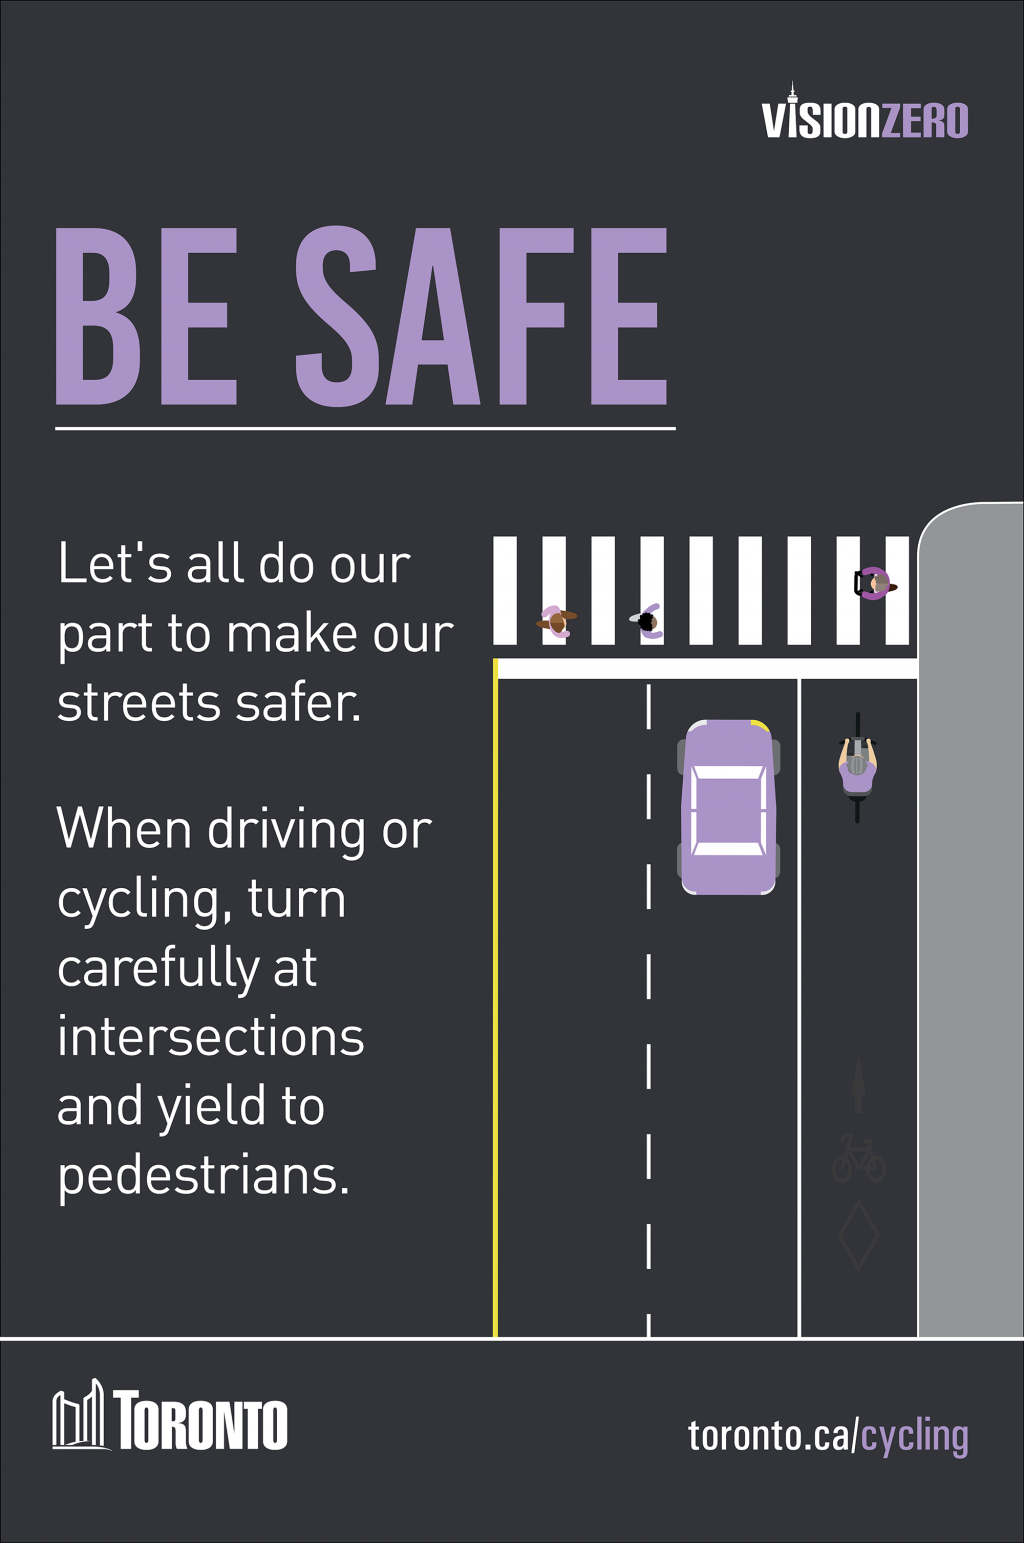 Be Safe. Let's all do our part to make our streets safer. When driving or cycling, turn carefully at intersections and yield to pedestrians.